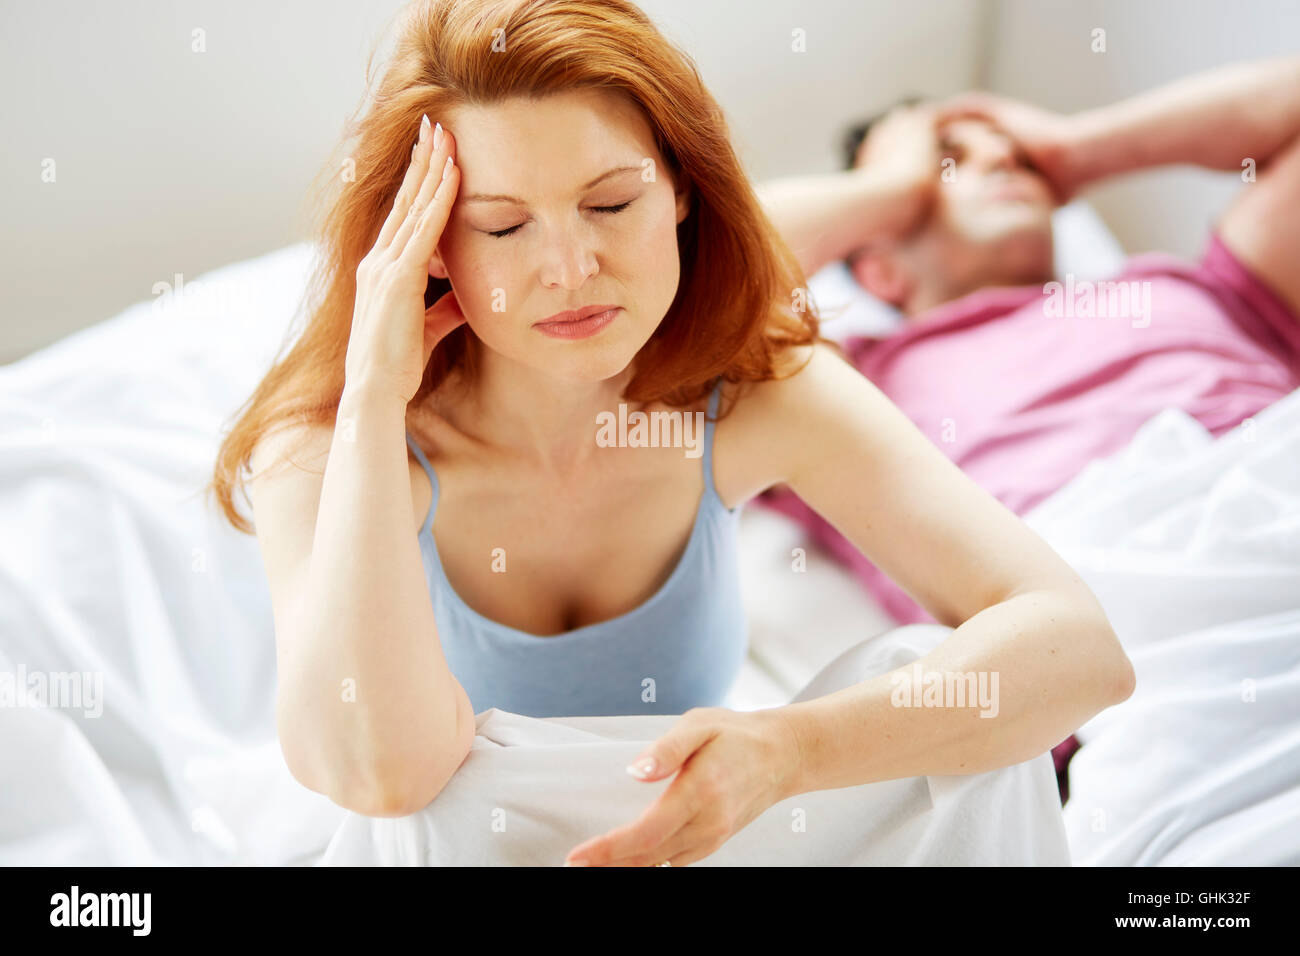 Couple arguing - Stock Image